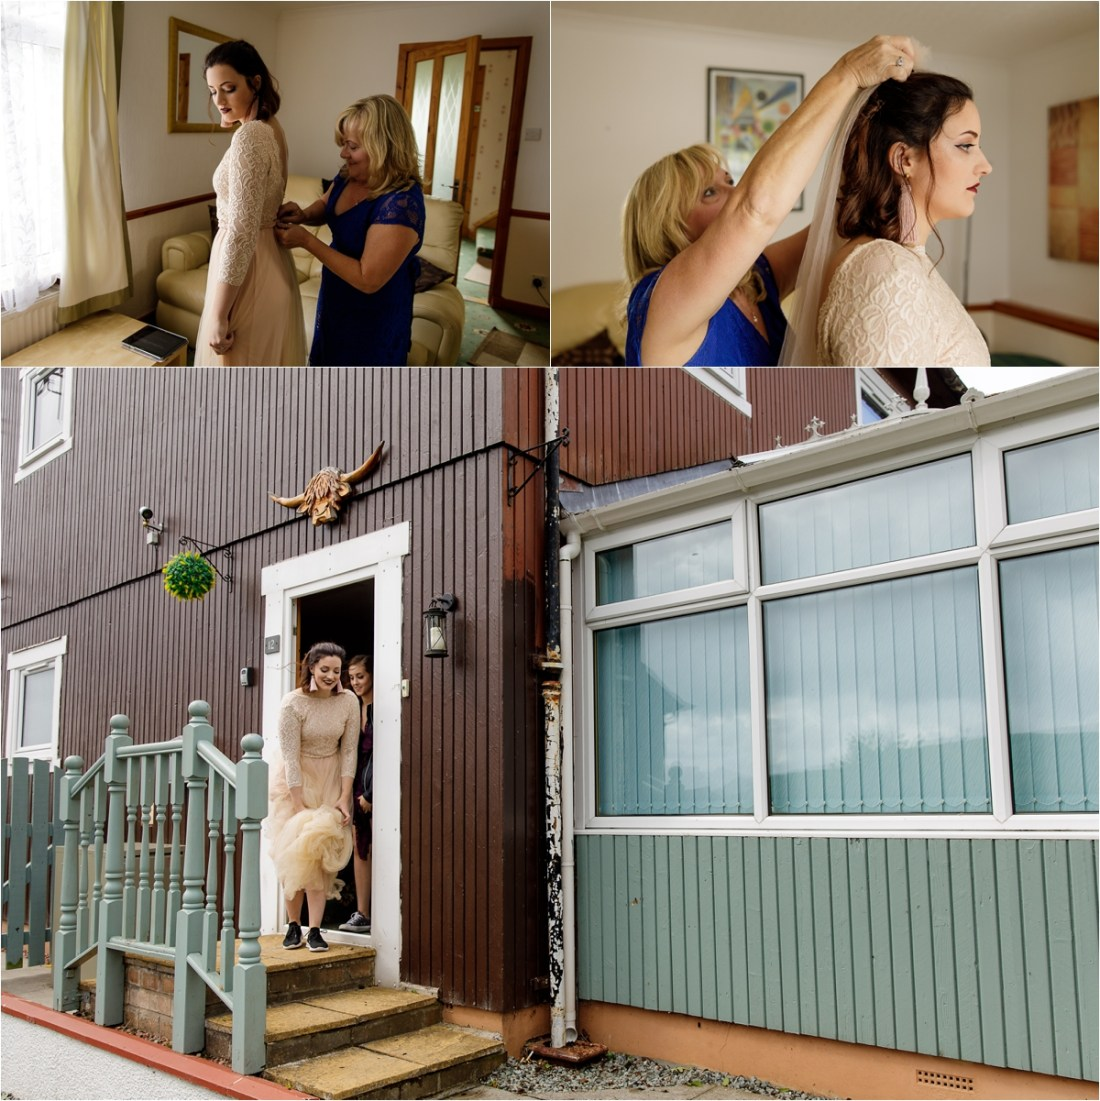 The bride leaves the holiday apartment for her Isle of Skye wedding in Scotland